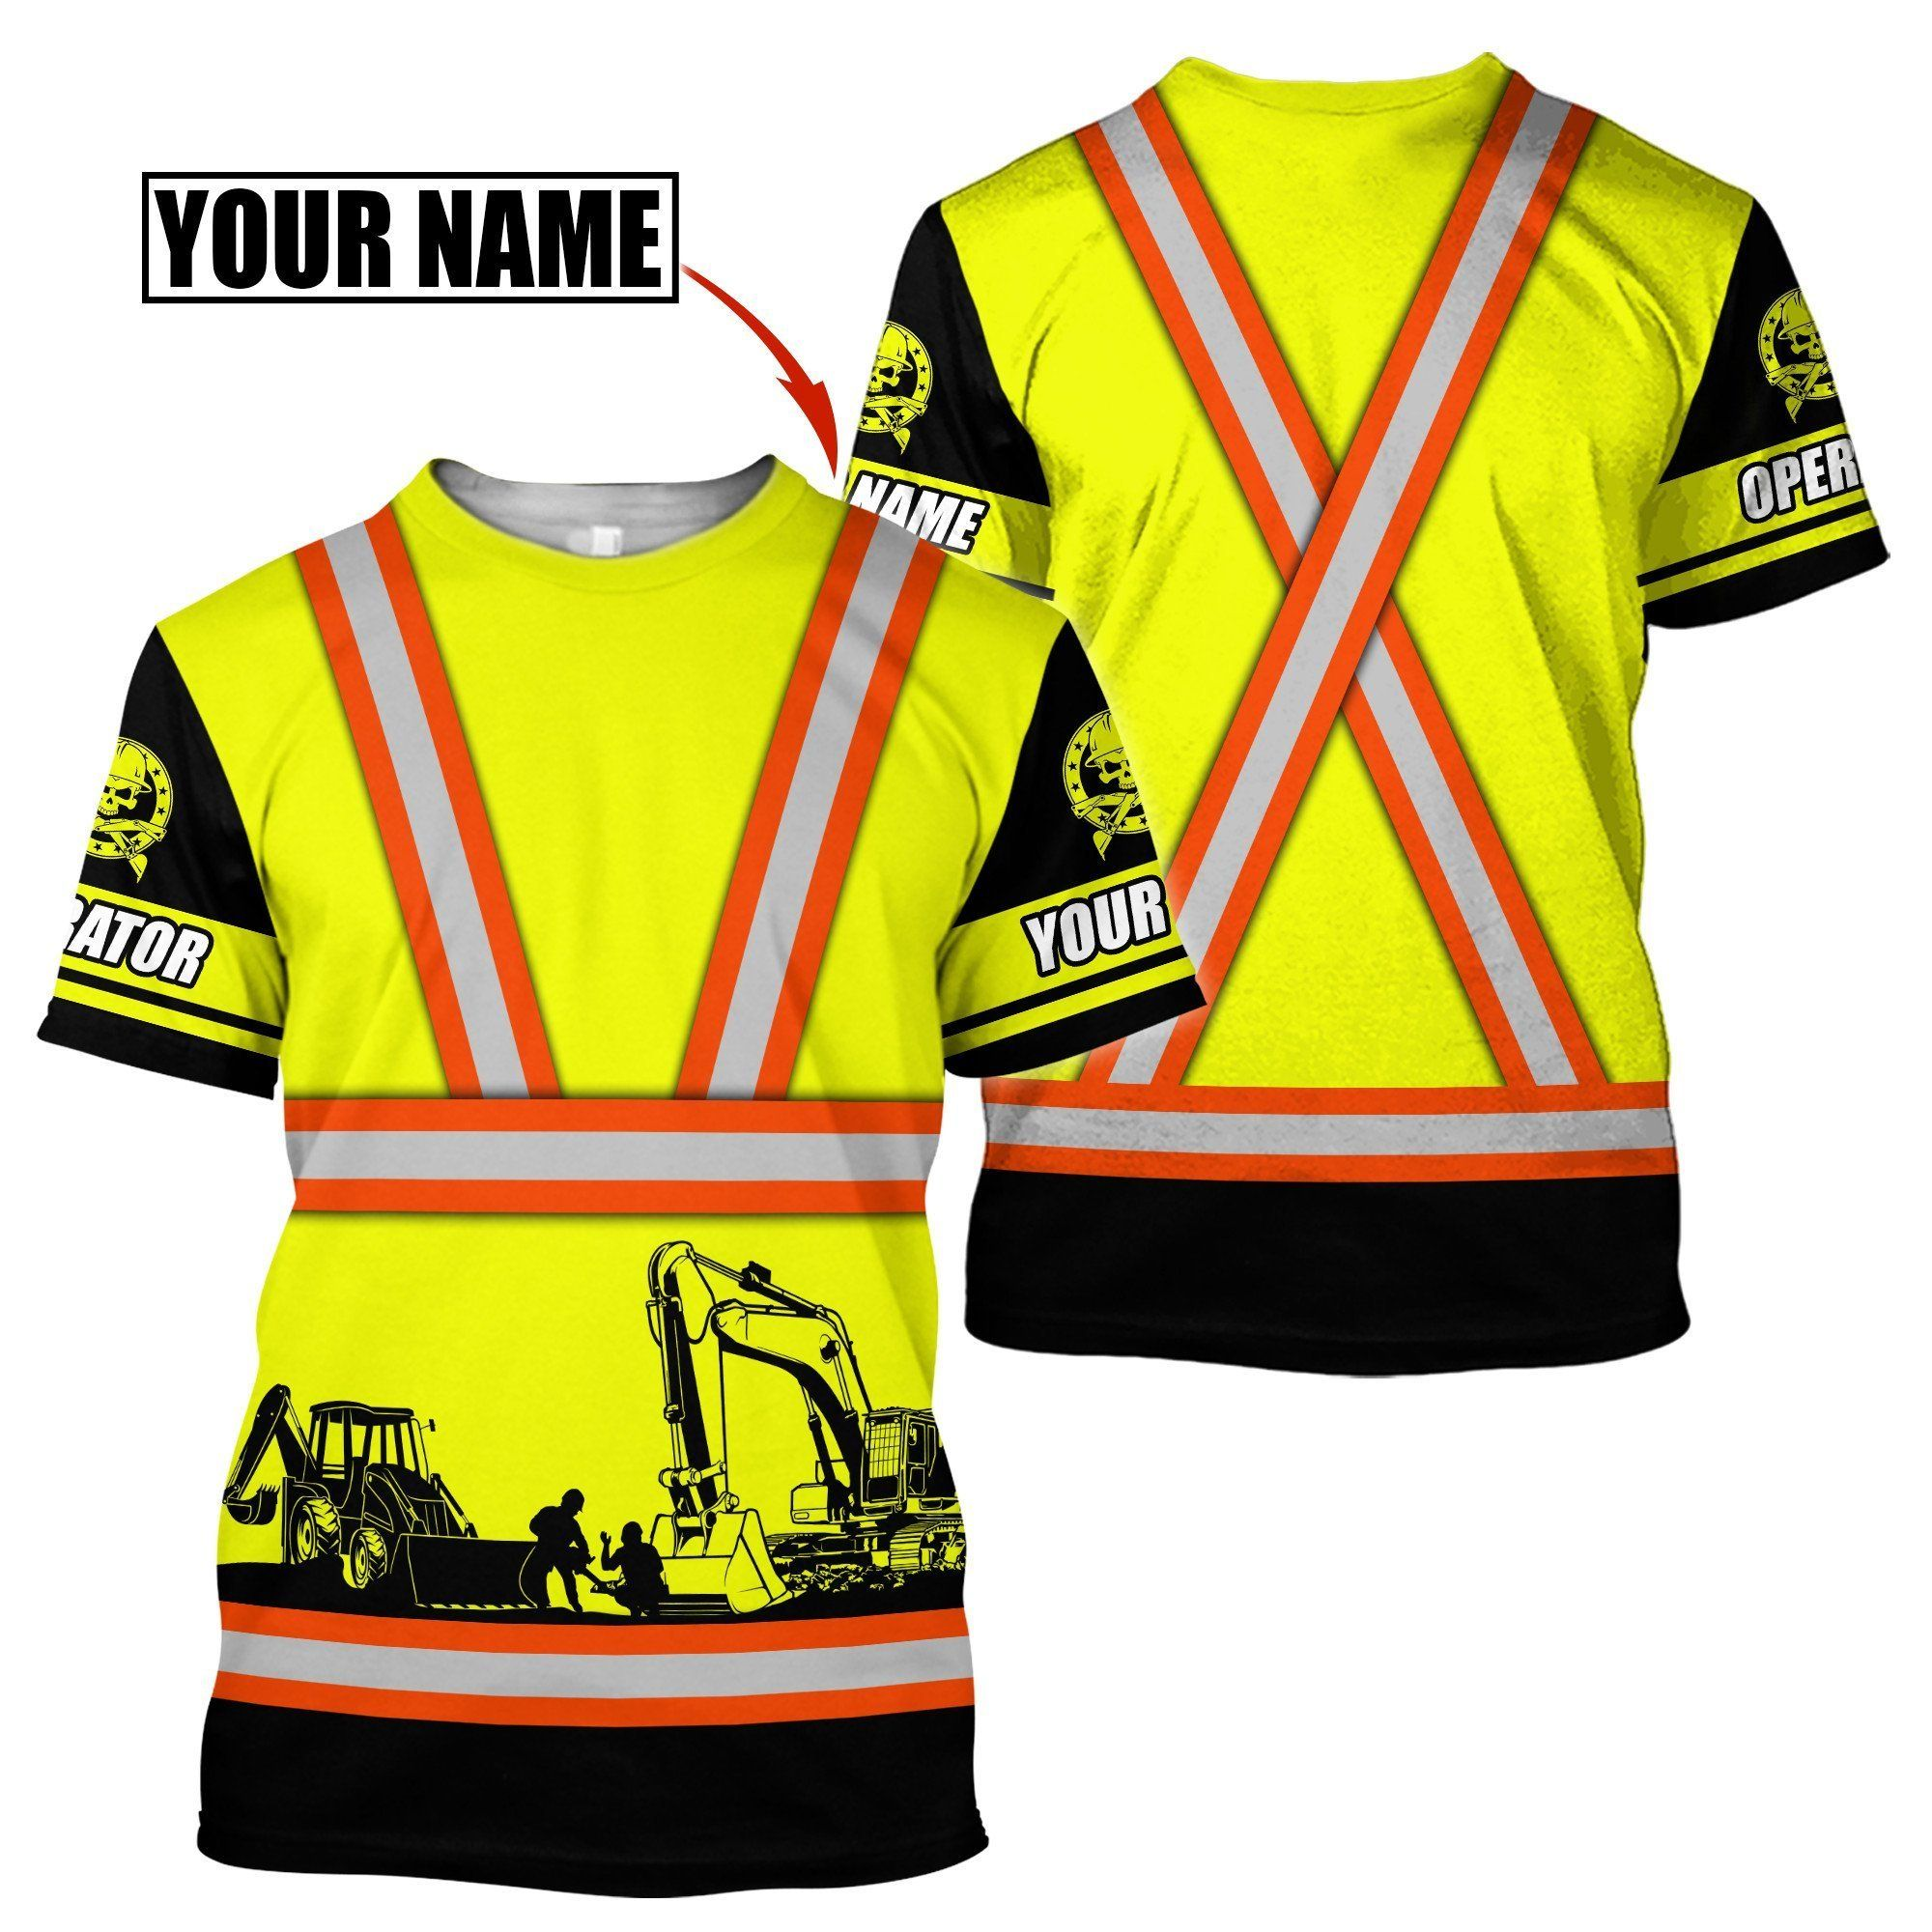 Customize Name Heavy Equipment Operator 3D All Over Printed Unisex Shirt - T-Shirt / 3XL